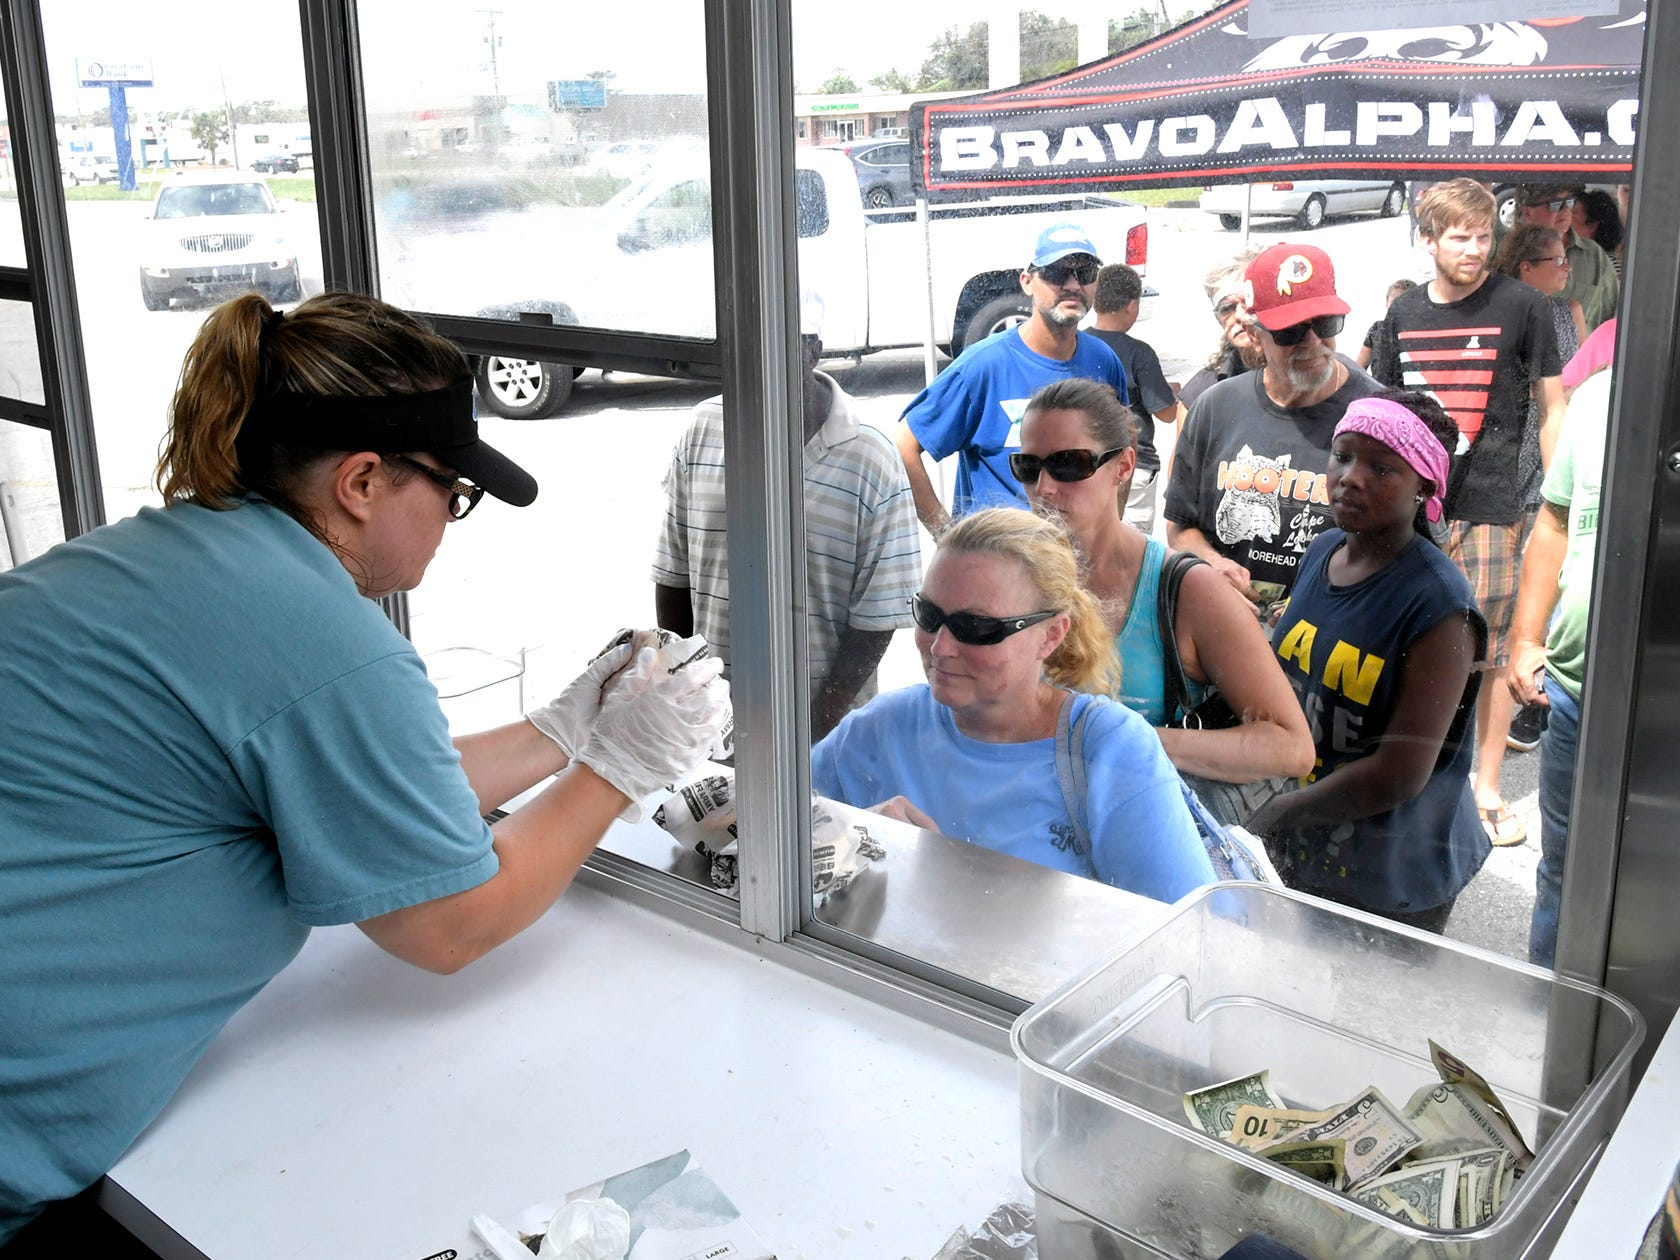 Michelle Byrum hands out hamburgers as people wait in line for free food from the Beer Army Burger Company food truck in Morehead City N.C., on Sept. 17, 2018.